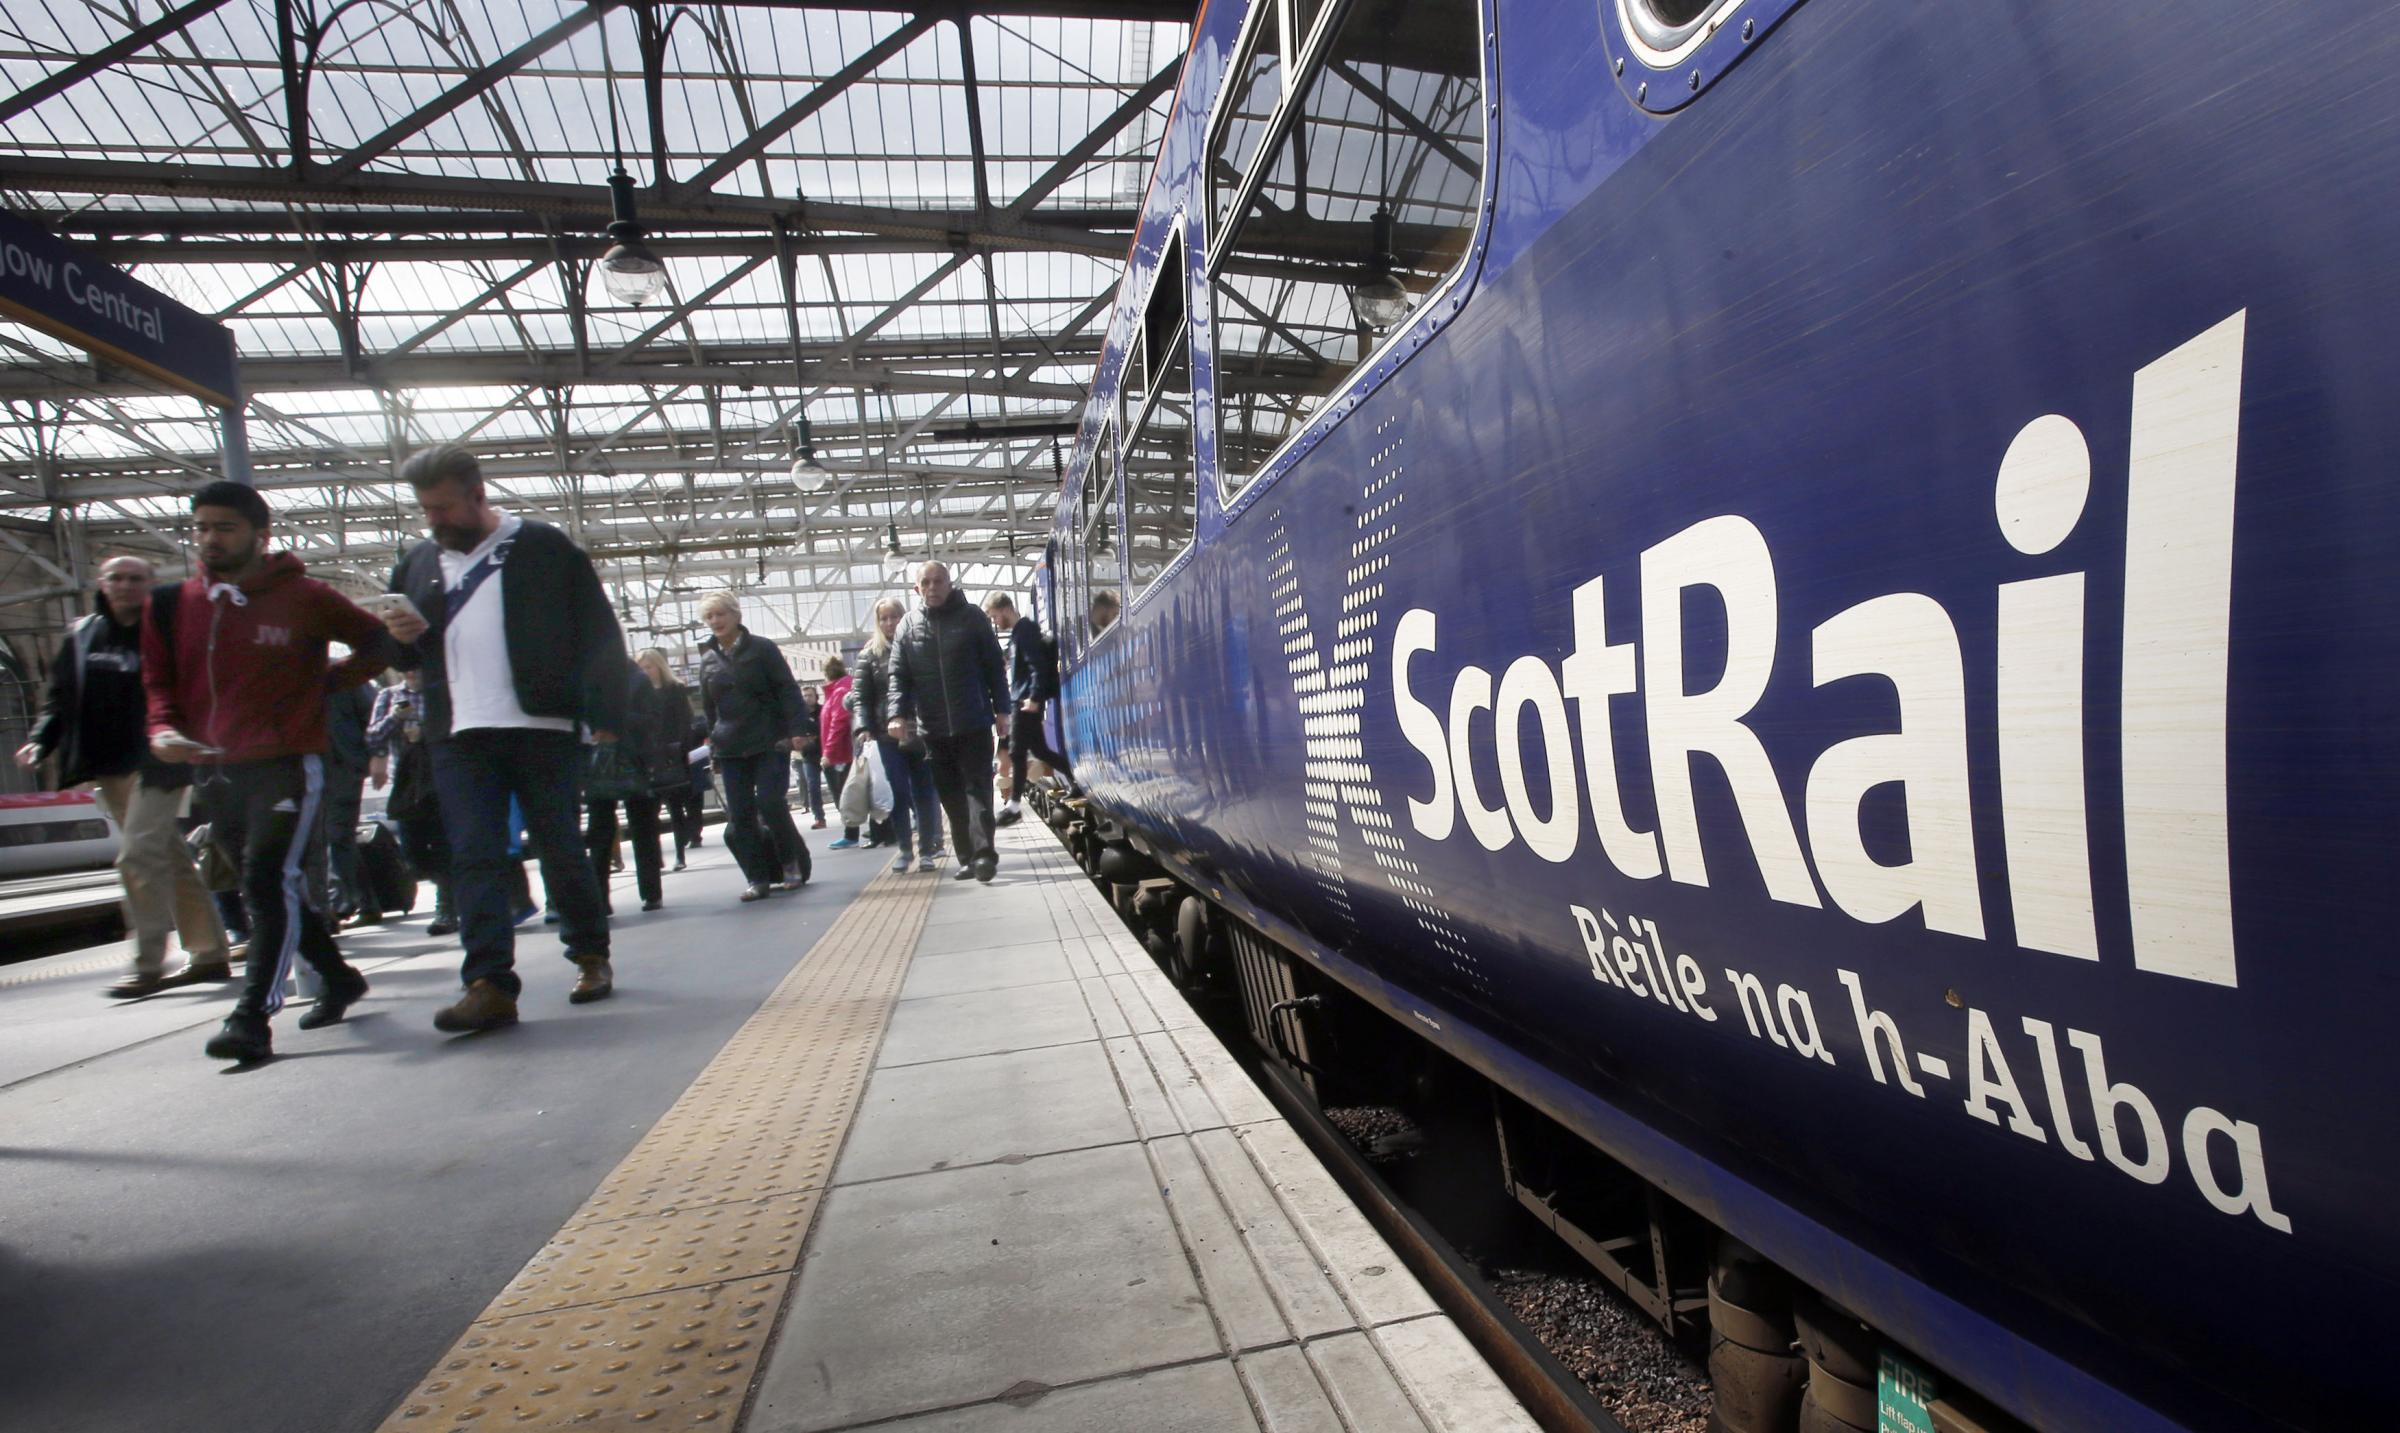 Rail campaigners call for action as fares rise hits commuters